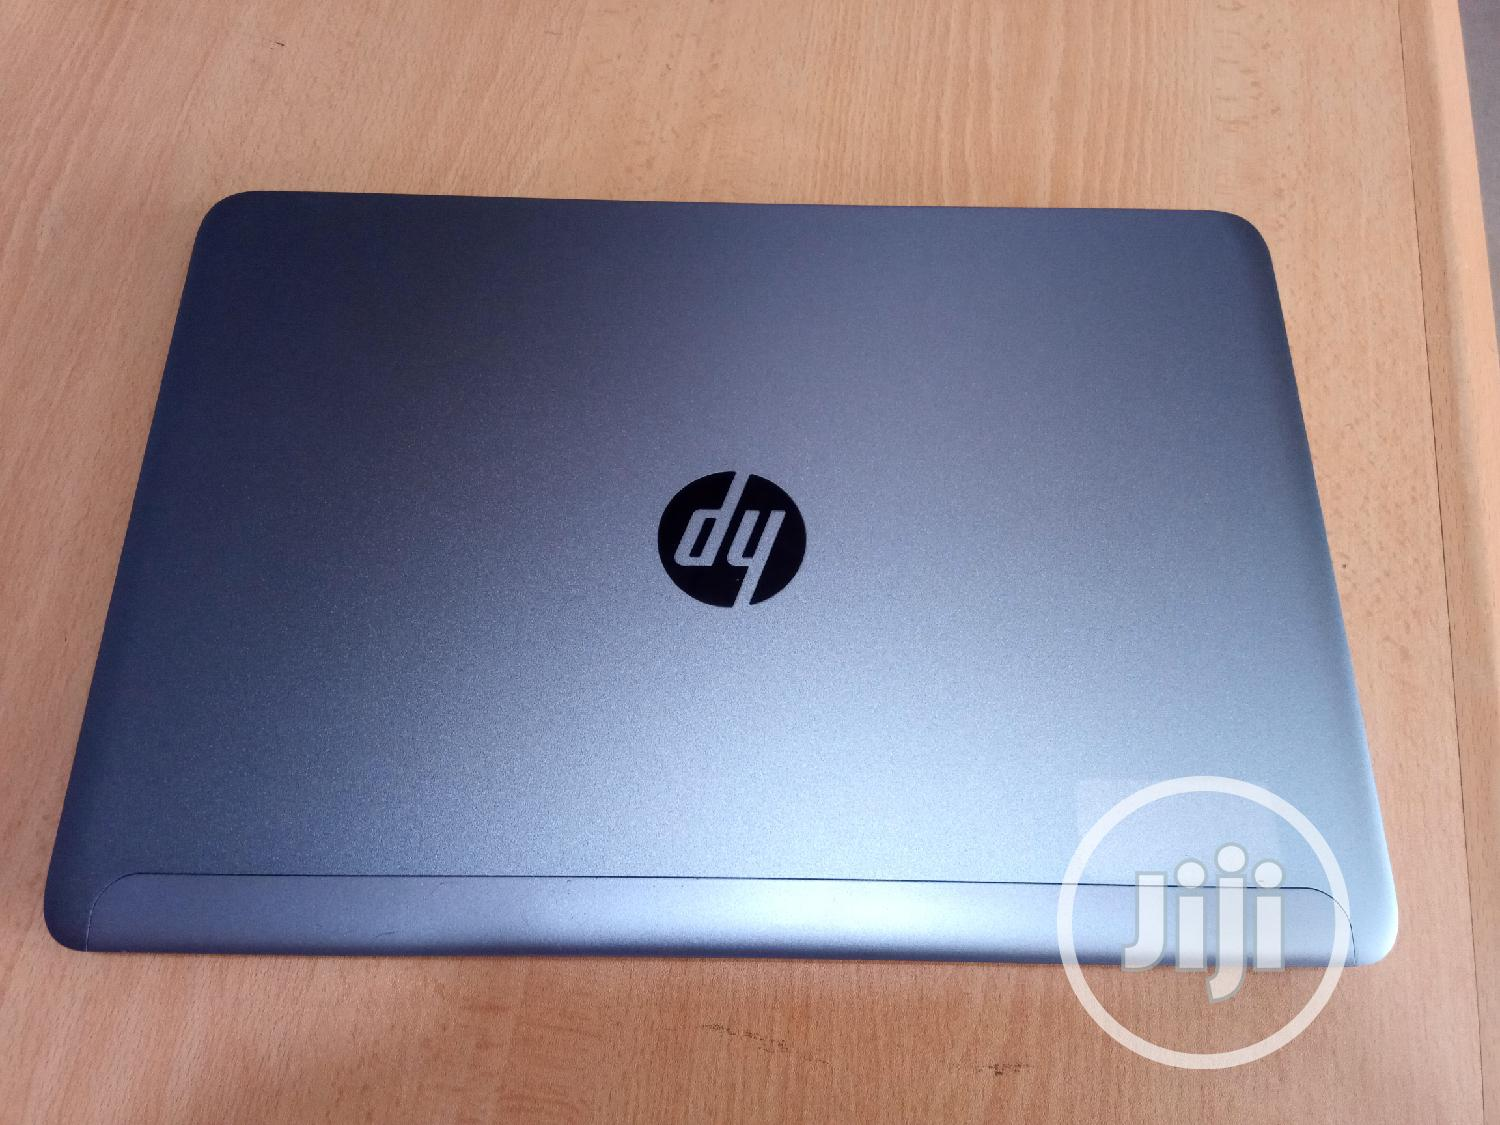 Laptop HP EliteBook Folio 1040 G2 8GB Intel Core i7 SSD 256GB | Laptops & Computers for sale in Abeokuta South, Ogun State, Nigeria